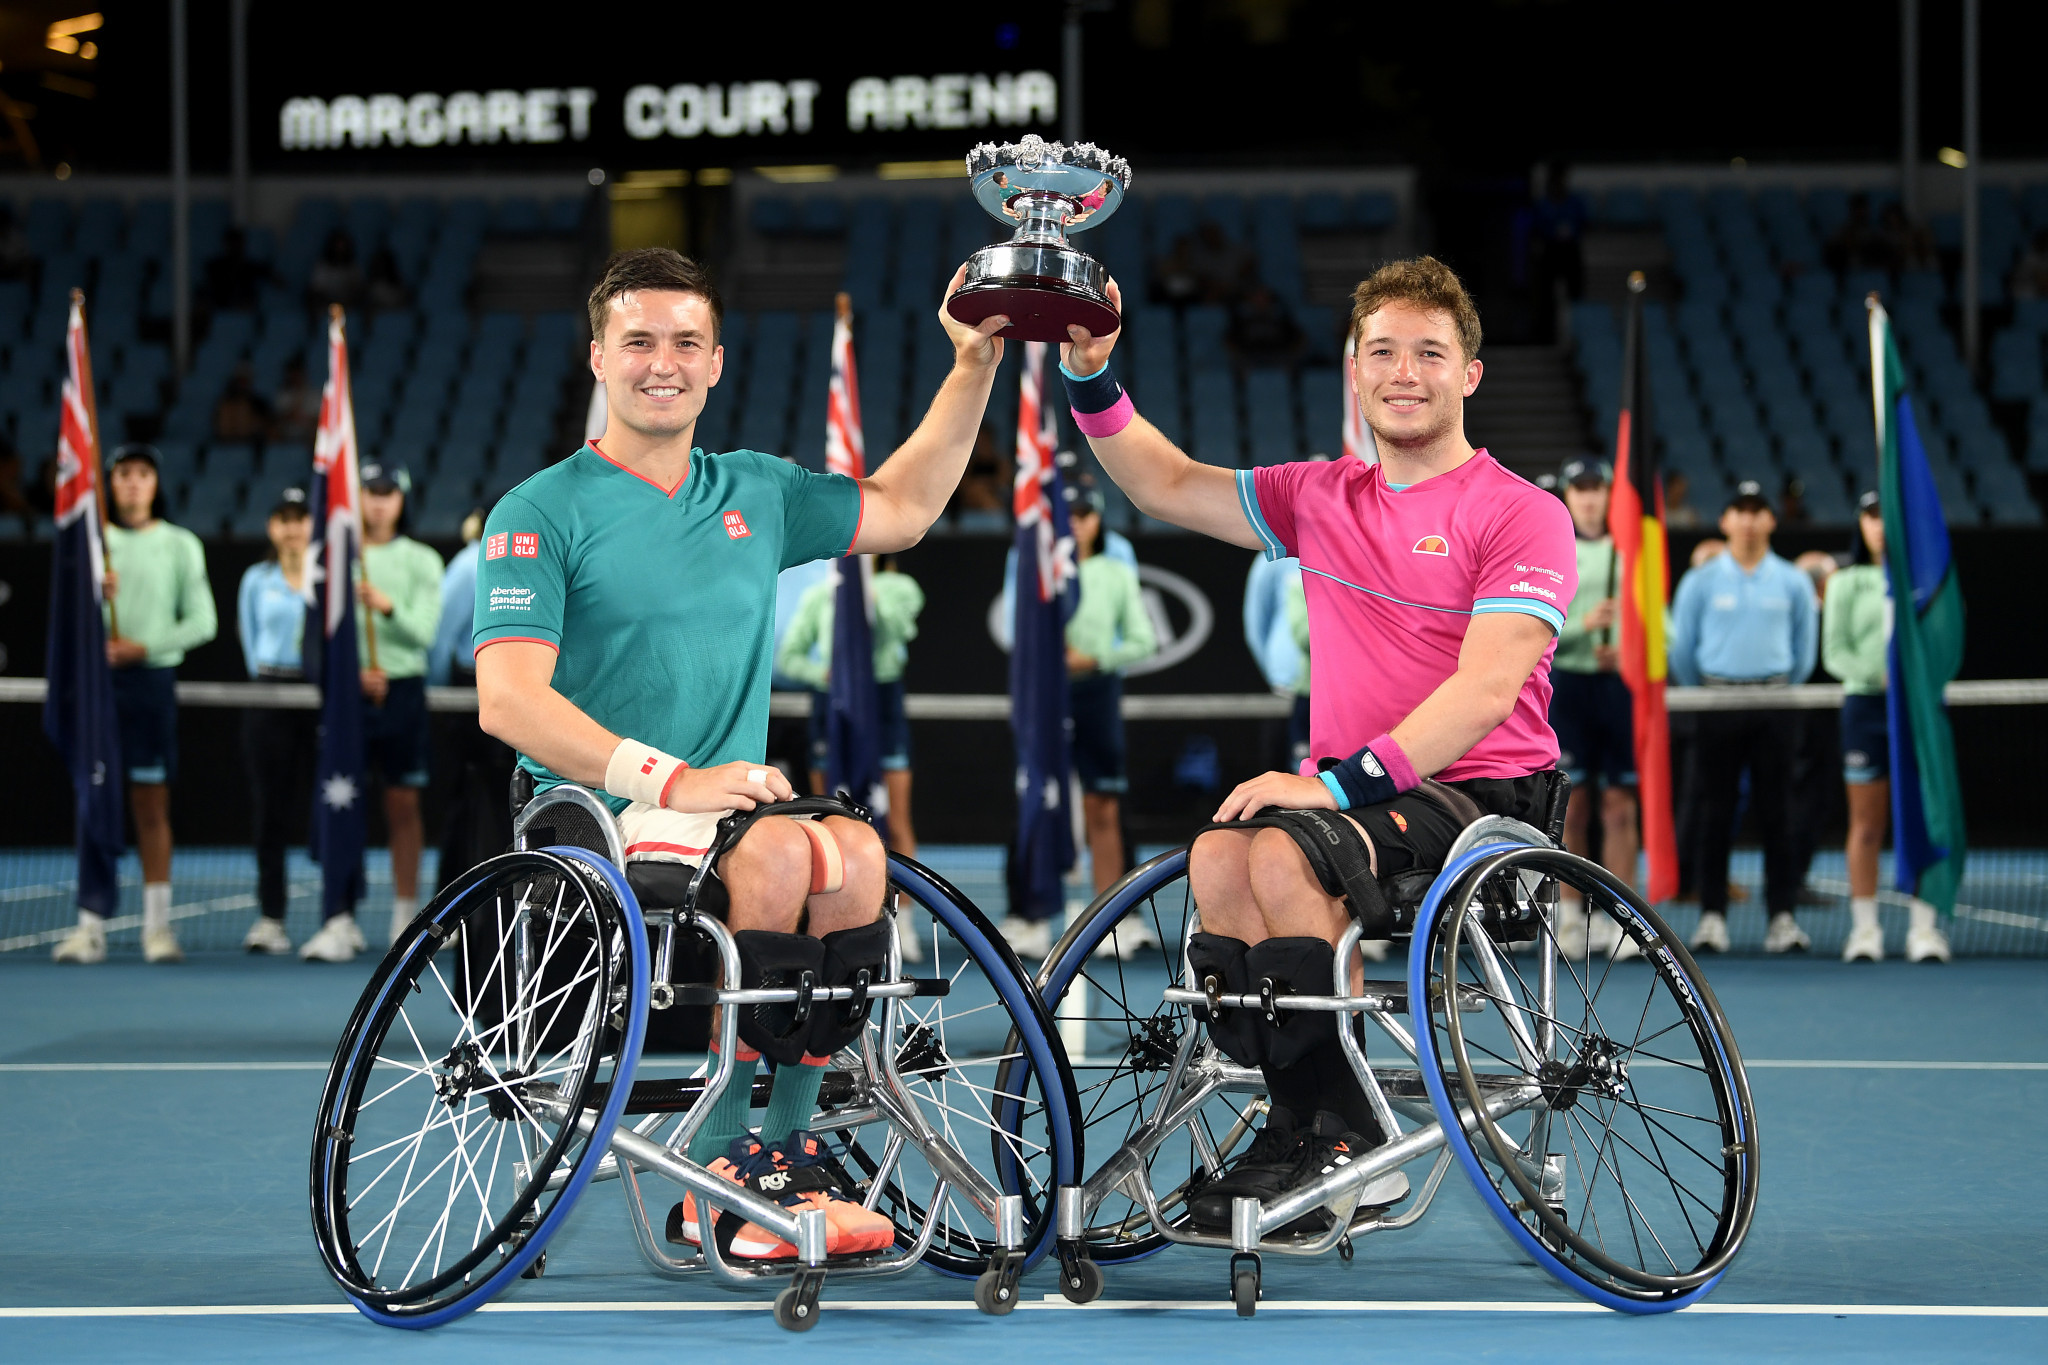 Wheelchair doubles champions crowned at Australian Open as top seeds lose